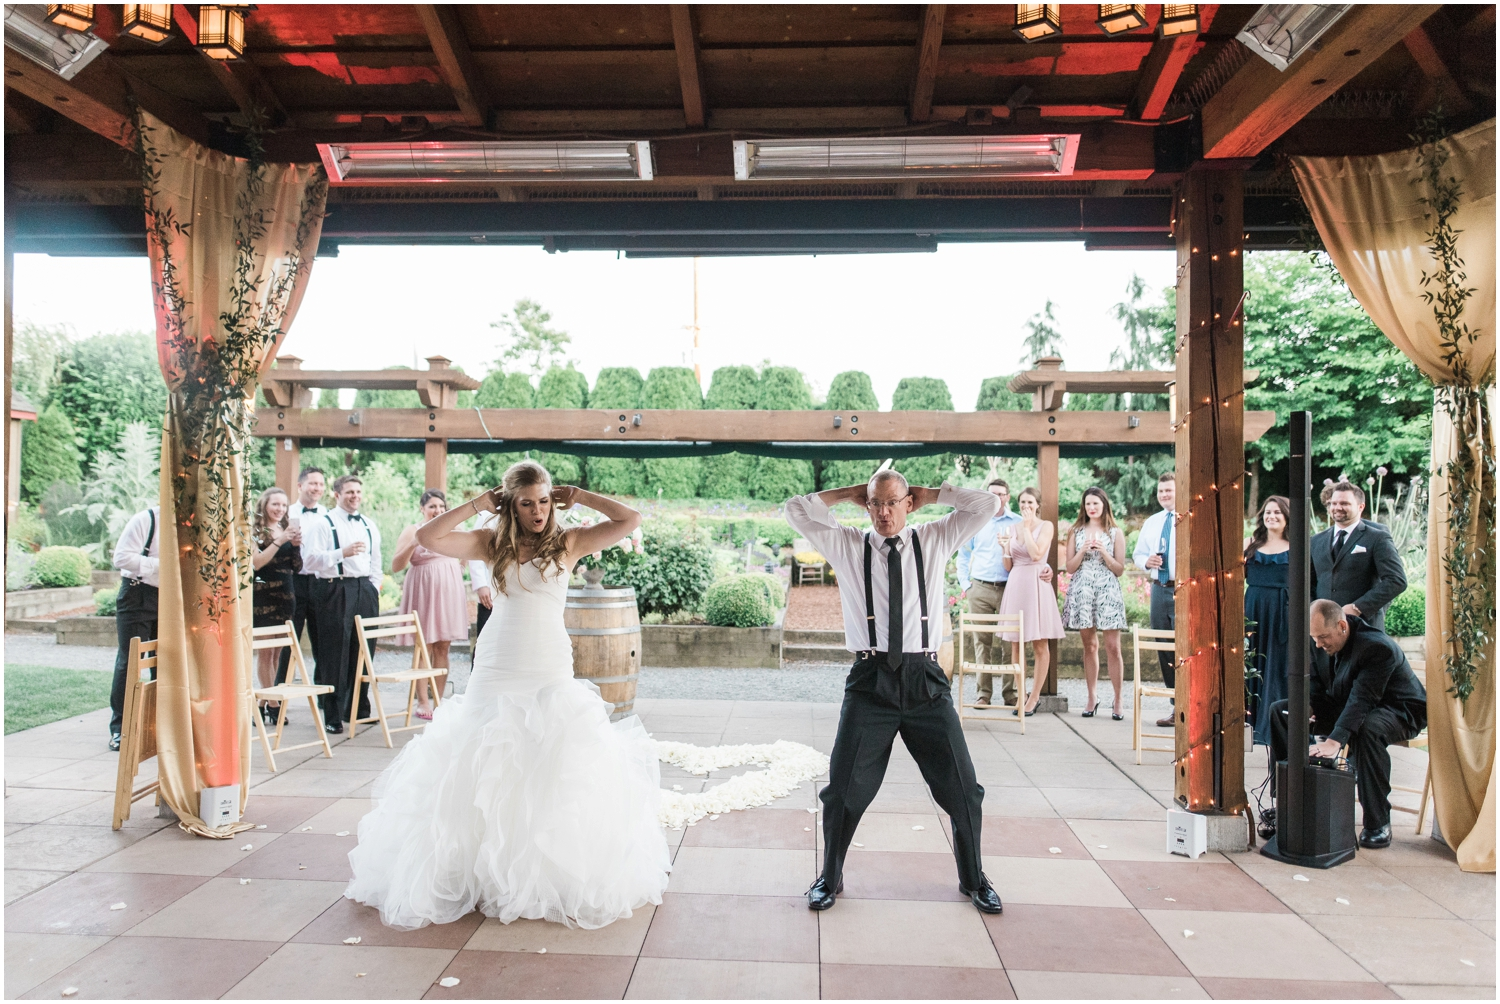 Hannah & Mikes Willows Lodge Wedding. Woodinville wedding Photographer